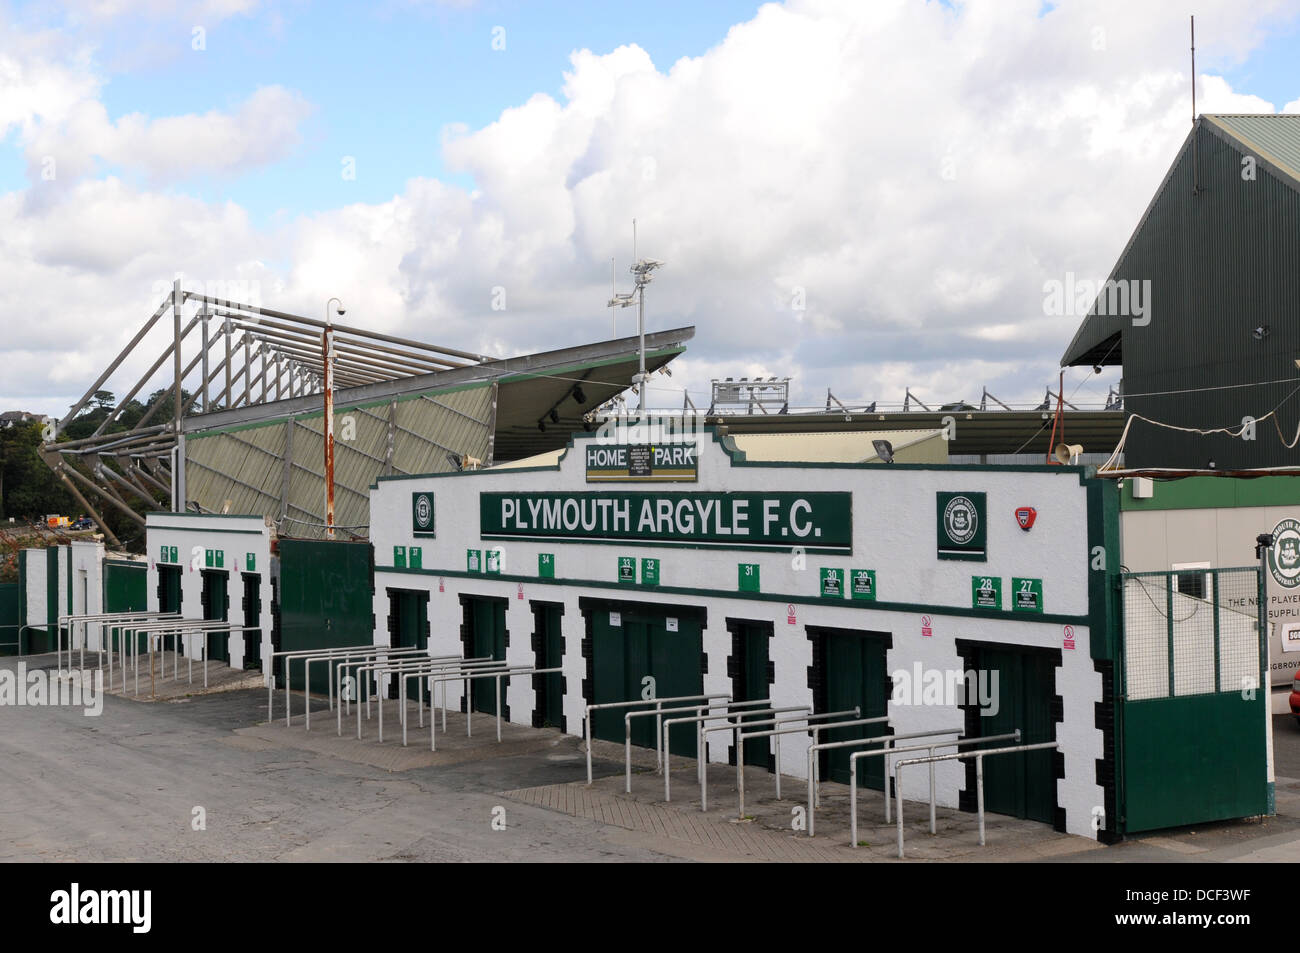 Home Park Plymouth Argyle Football Ground